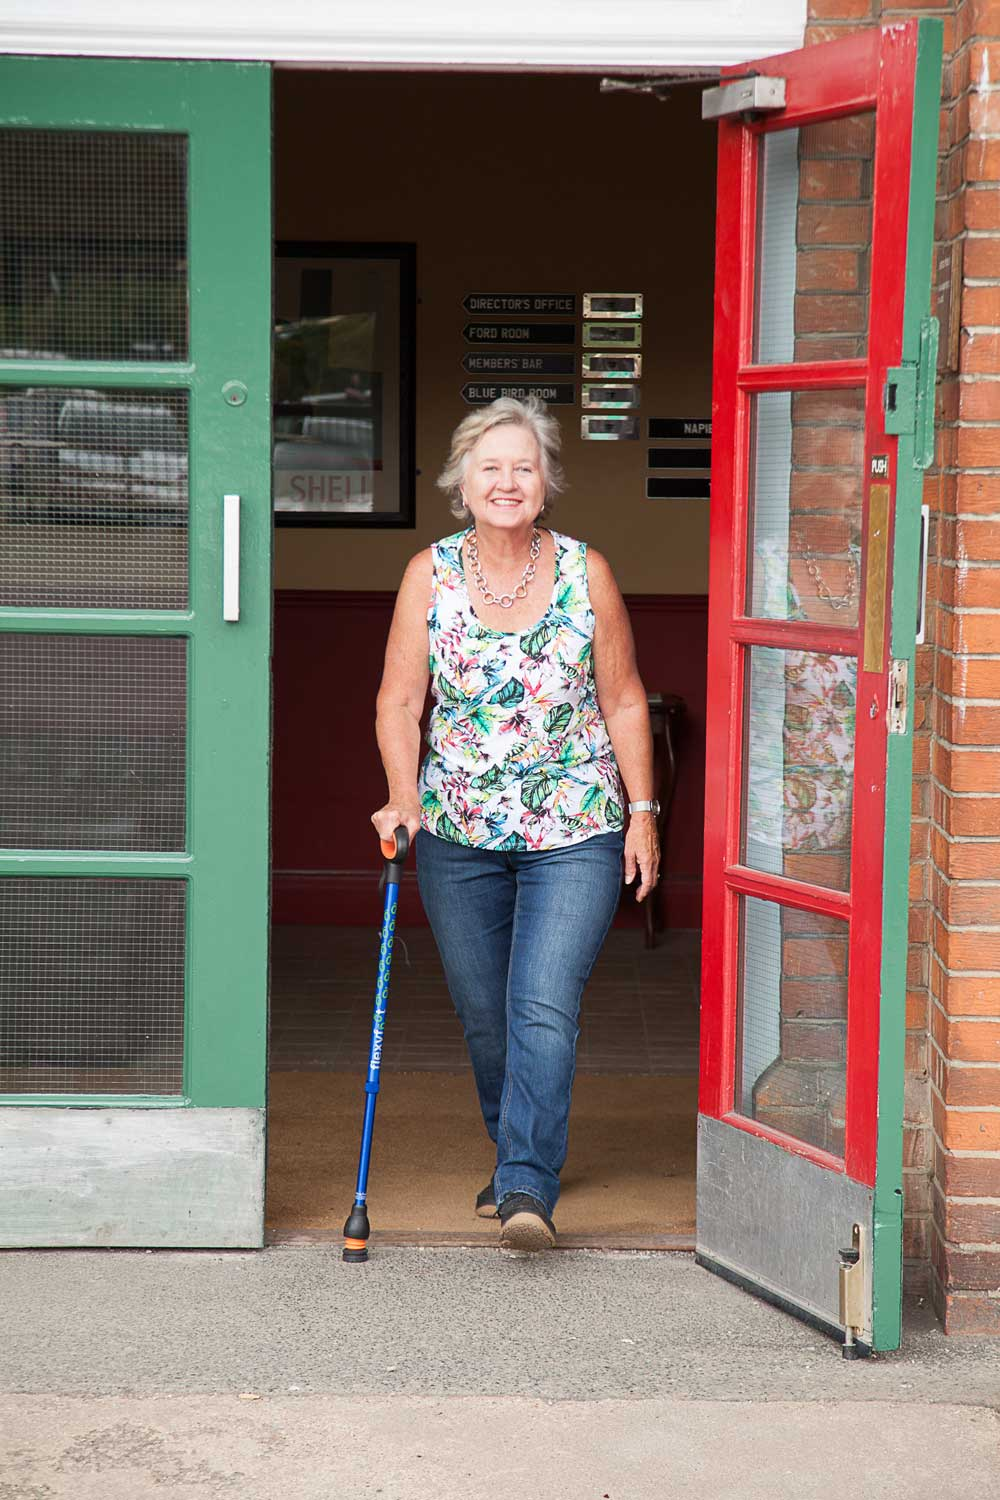 Flexyfoot Telescopic Walking Stick In Use